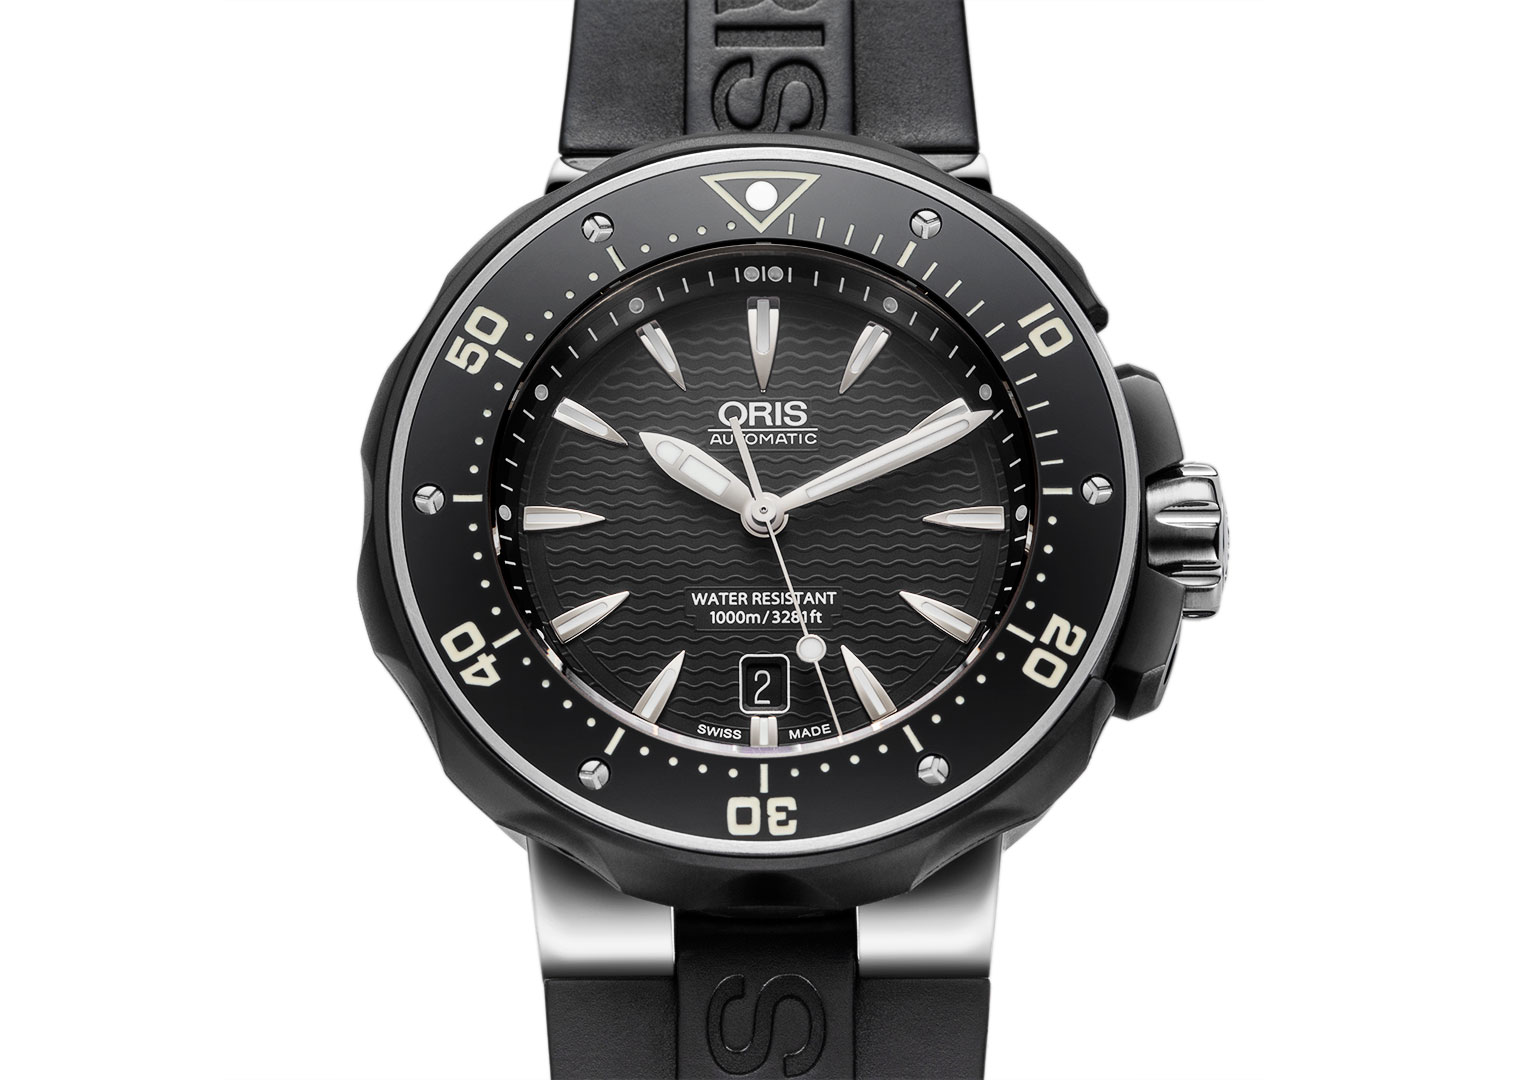 Oris was founded by Paul Cattin and Georges Christian in 1904, Hölstein, Switzerland